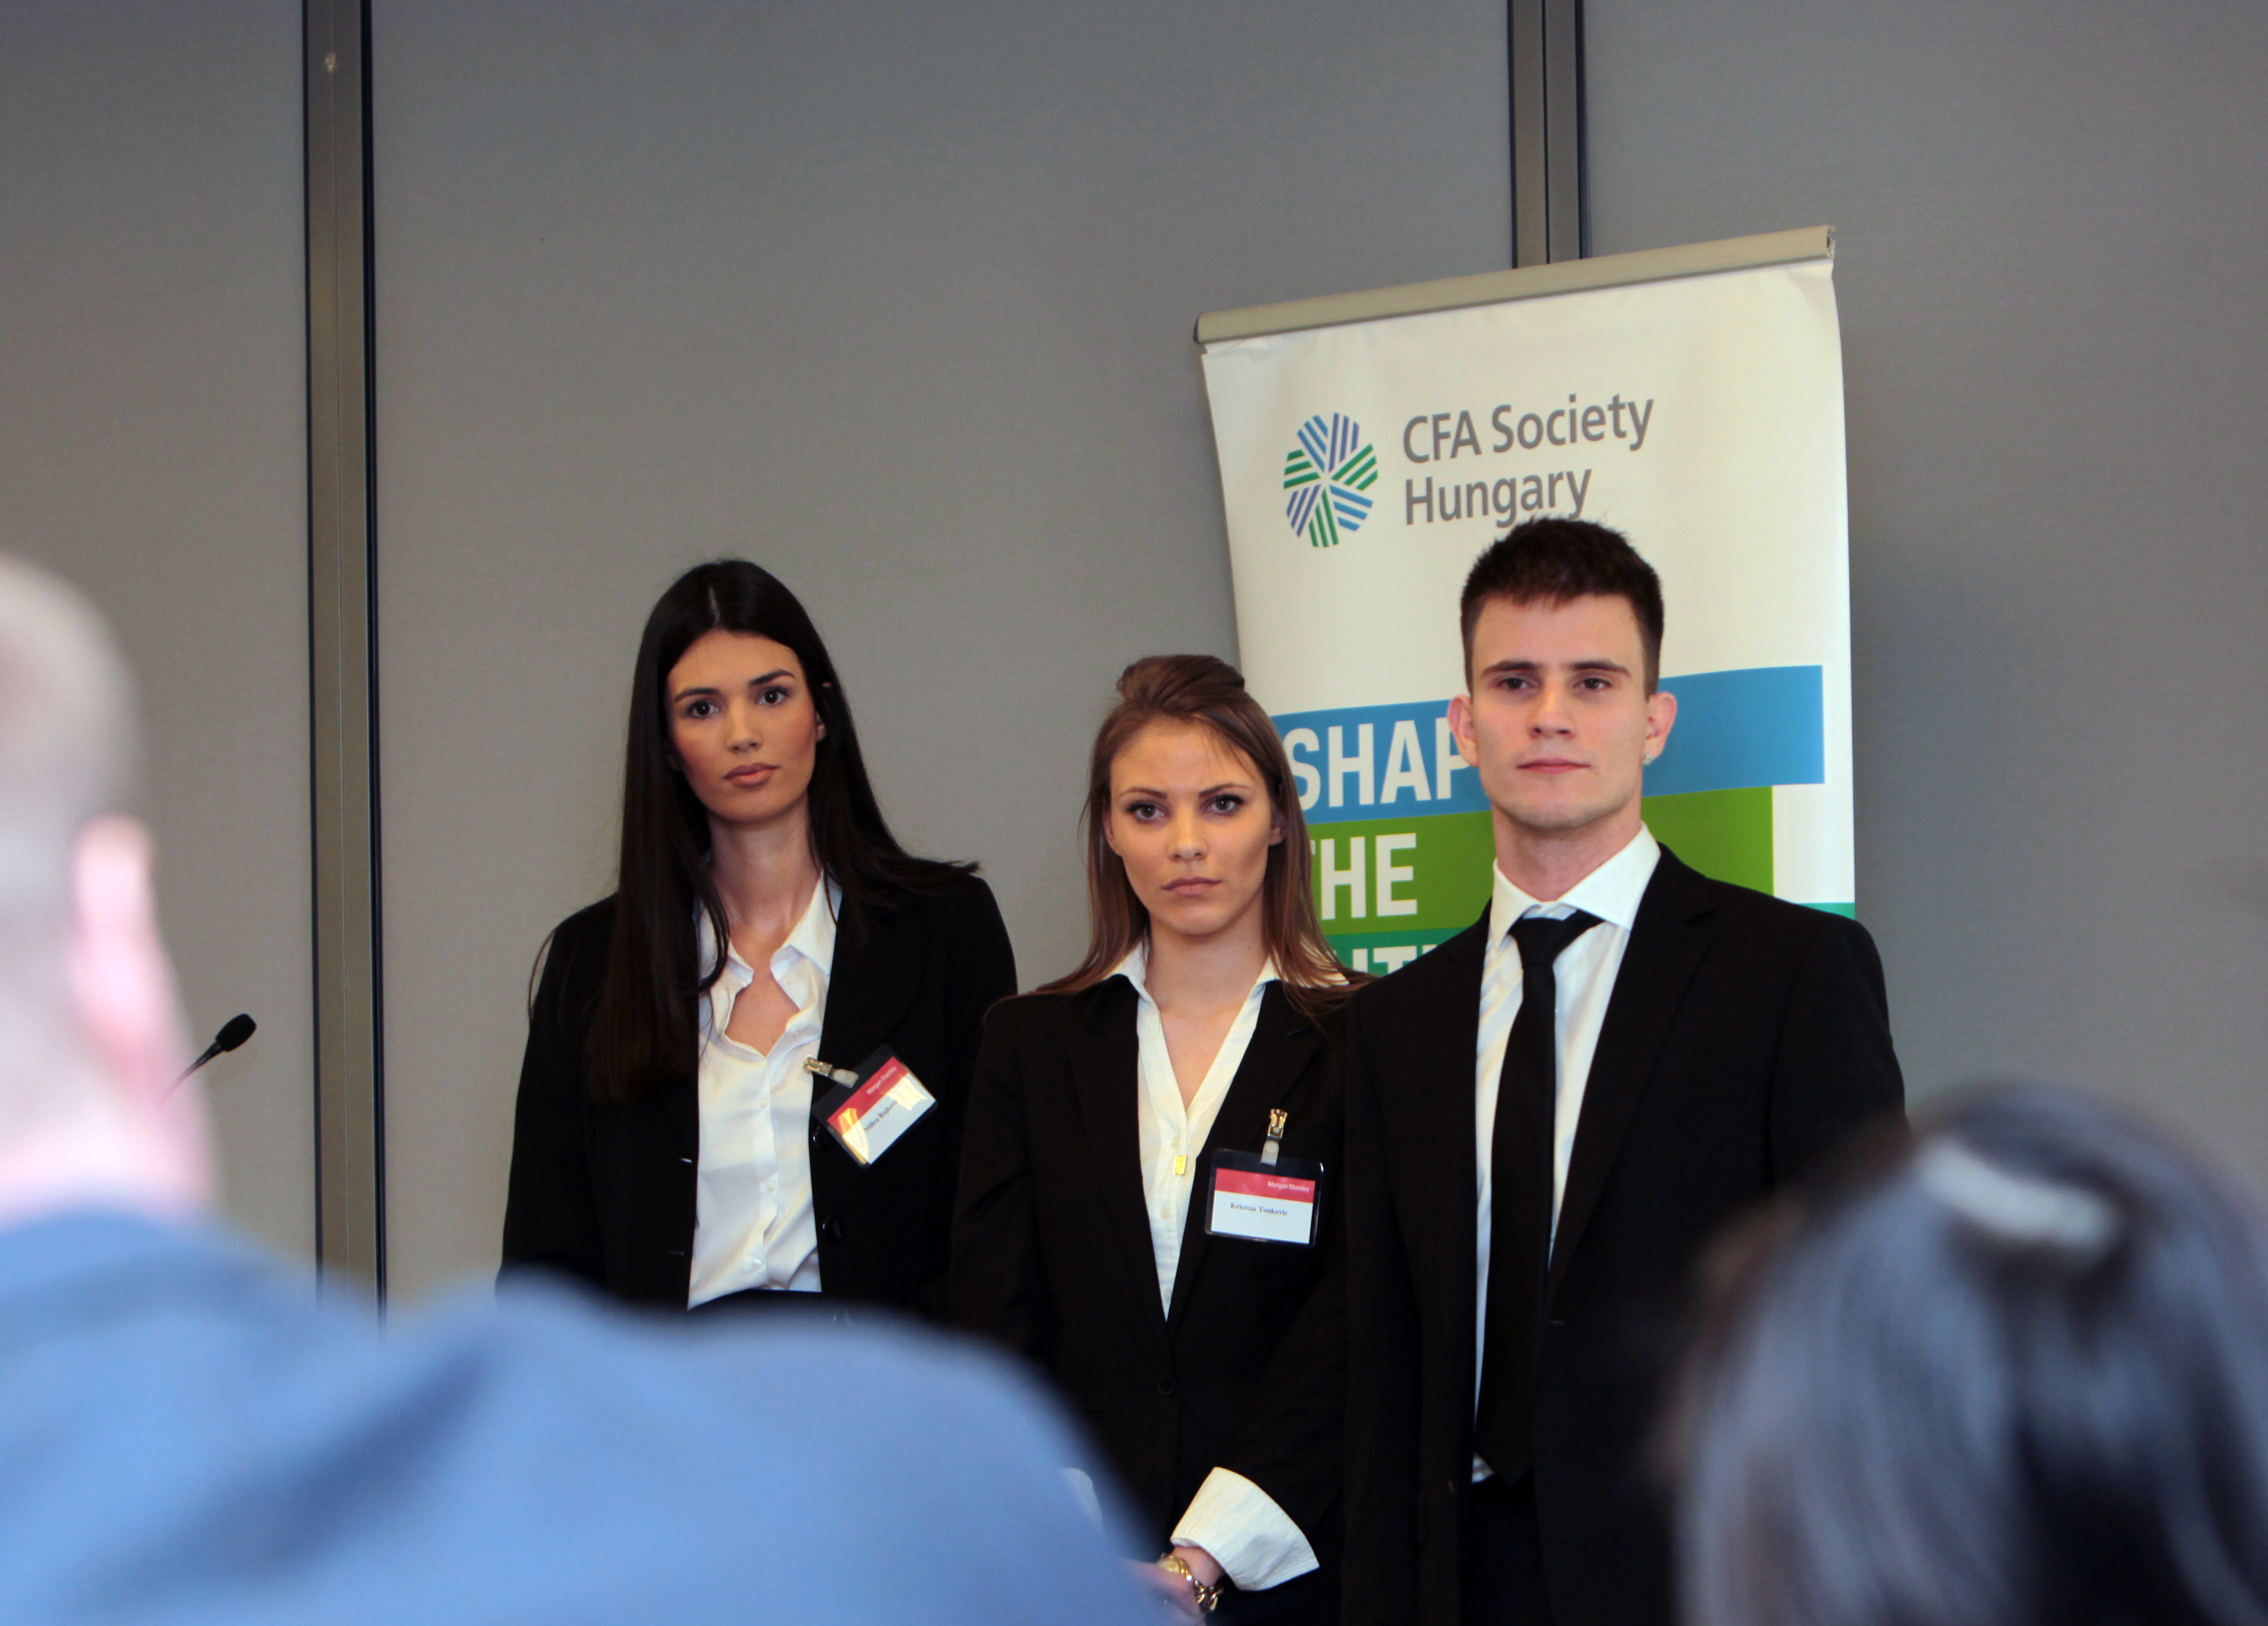 BUDAPEST, HUNGARY - FRIDAY, JANUARY 22, 2016: Students from universities in Hungary and Serbia compete in the annual CFA sponsored pitch fest. The event was held at Morgan Stanley.   Photographer: Mark Milstein/ Northfoto